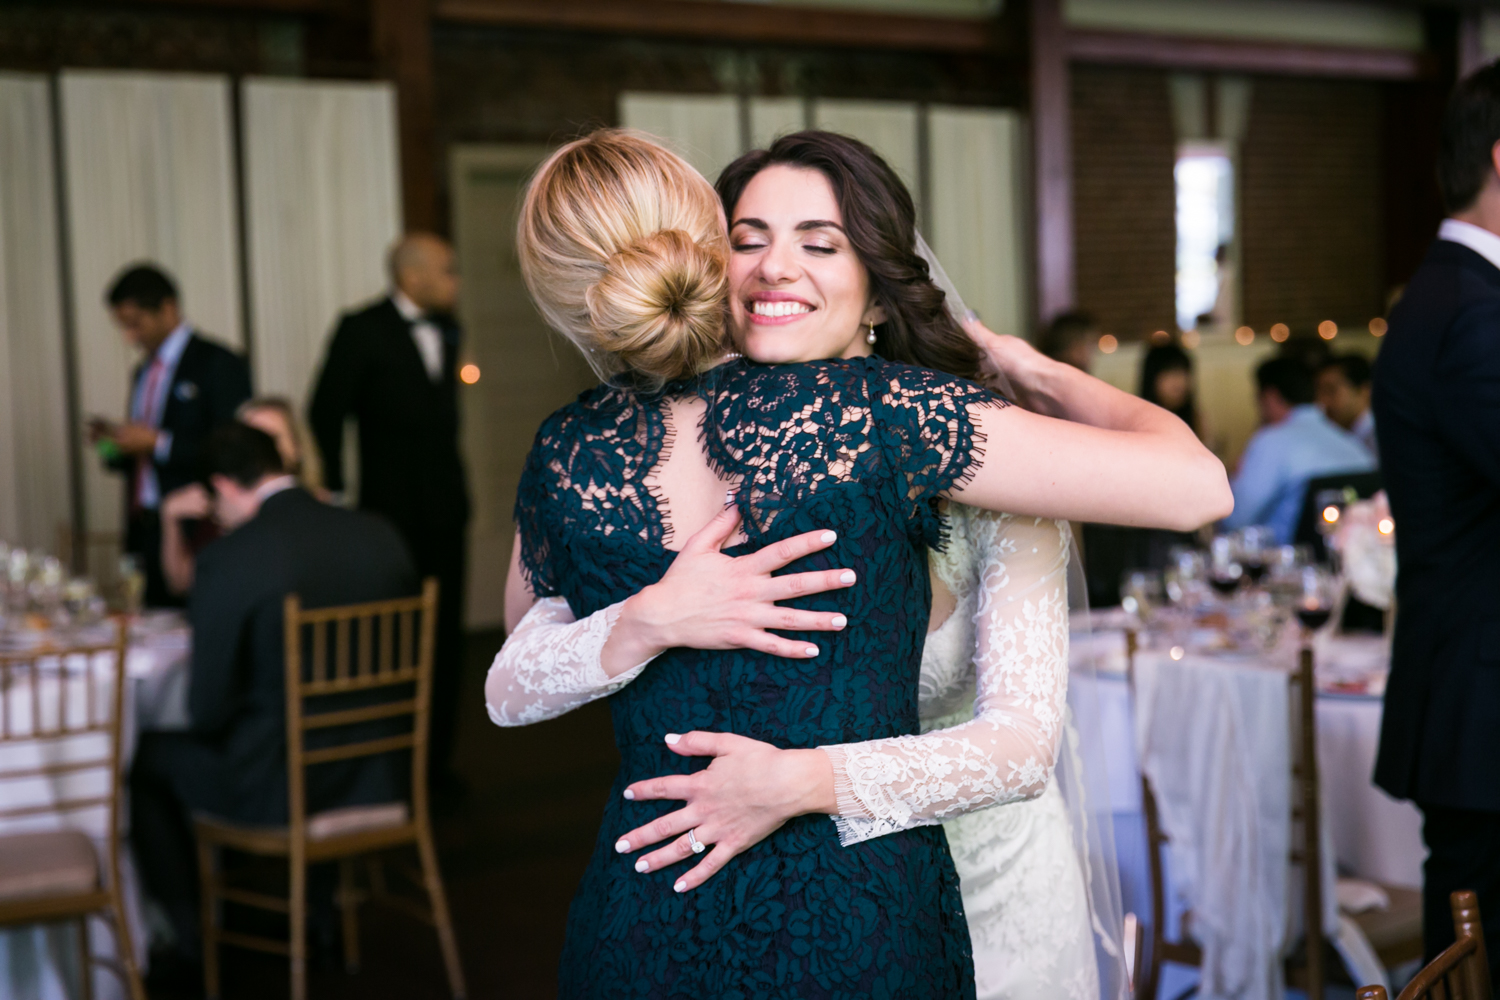 Bride hugging female guest at a Loeb Boathouse wedding in Central Park